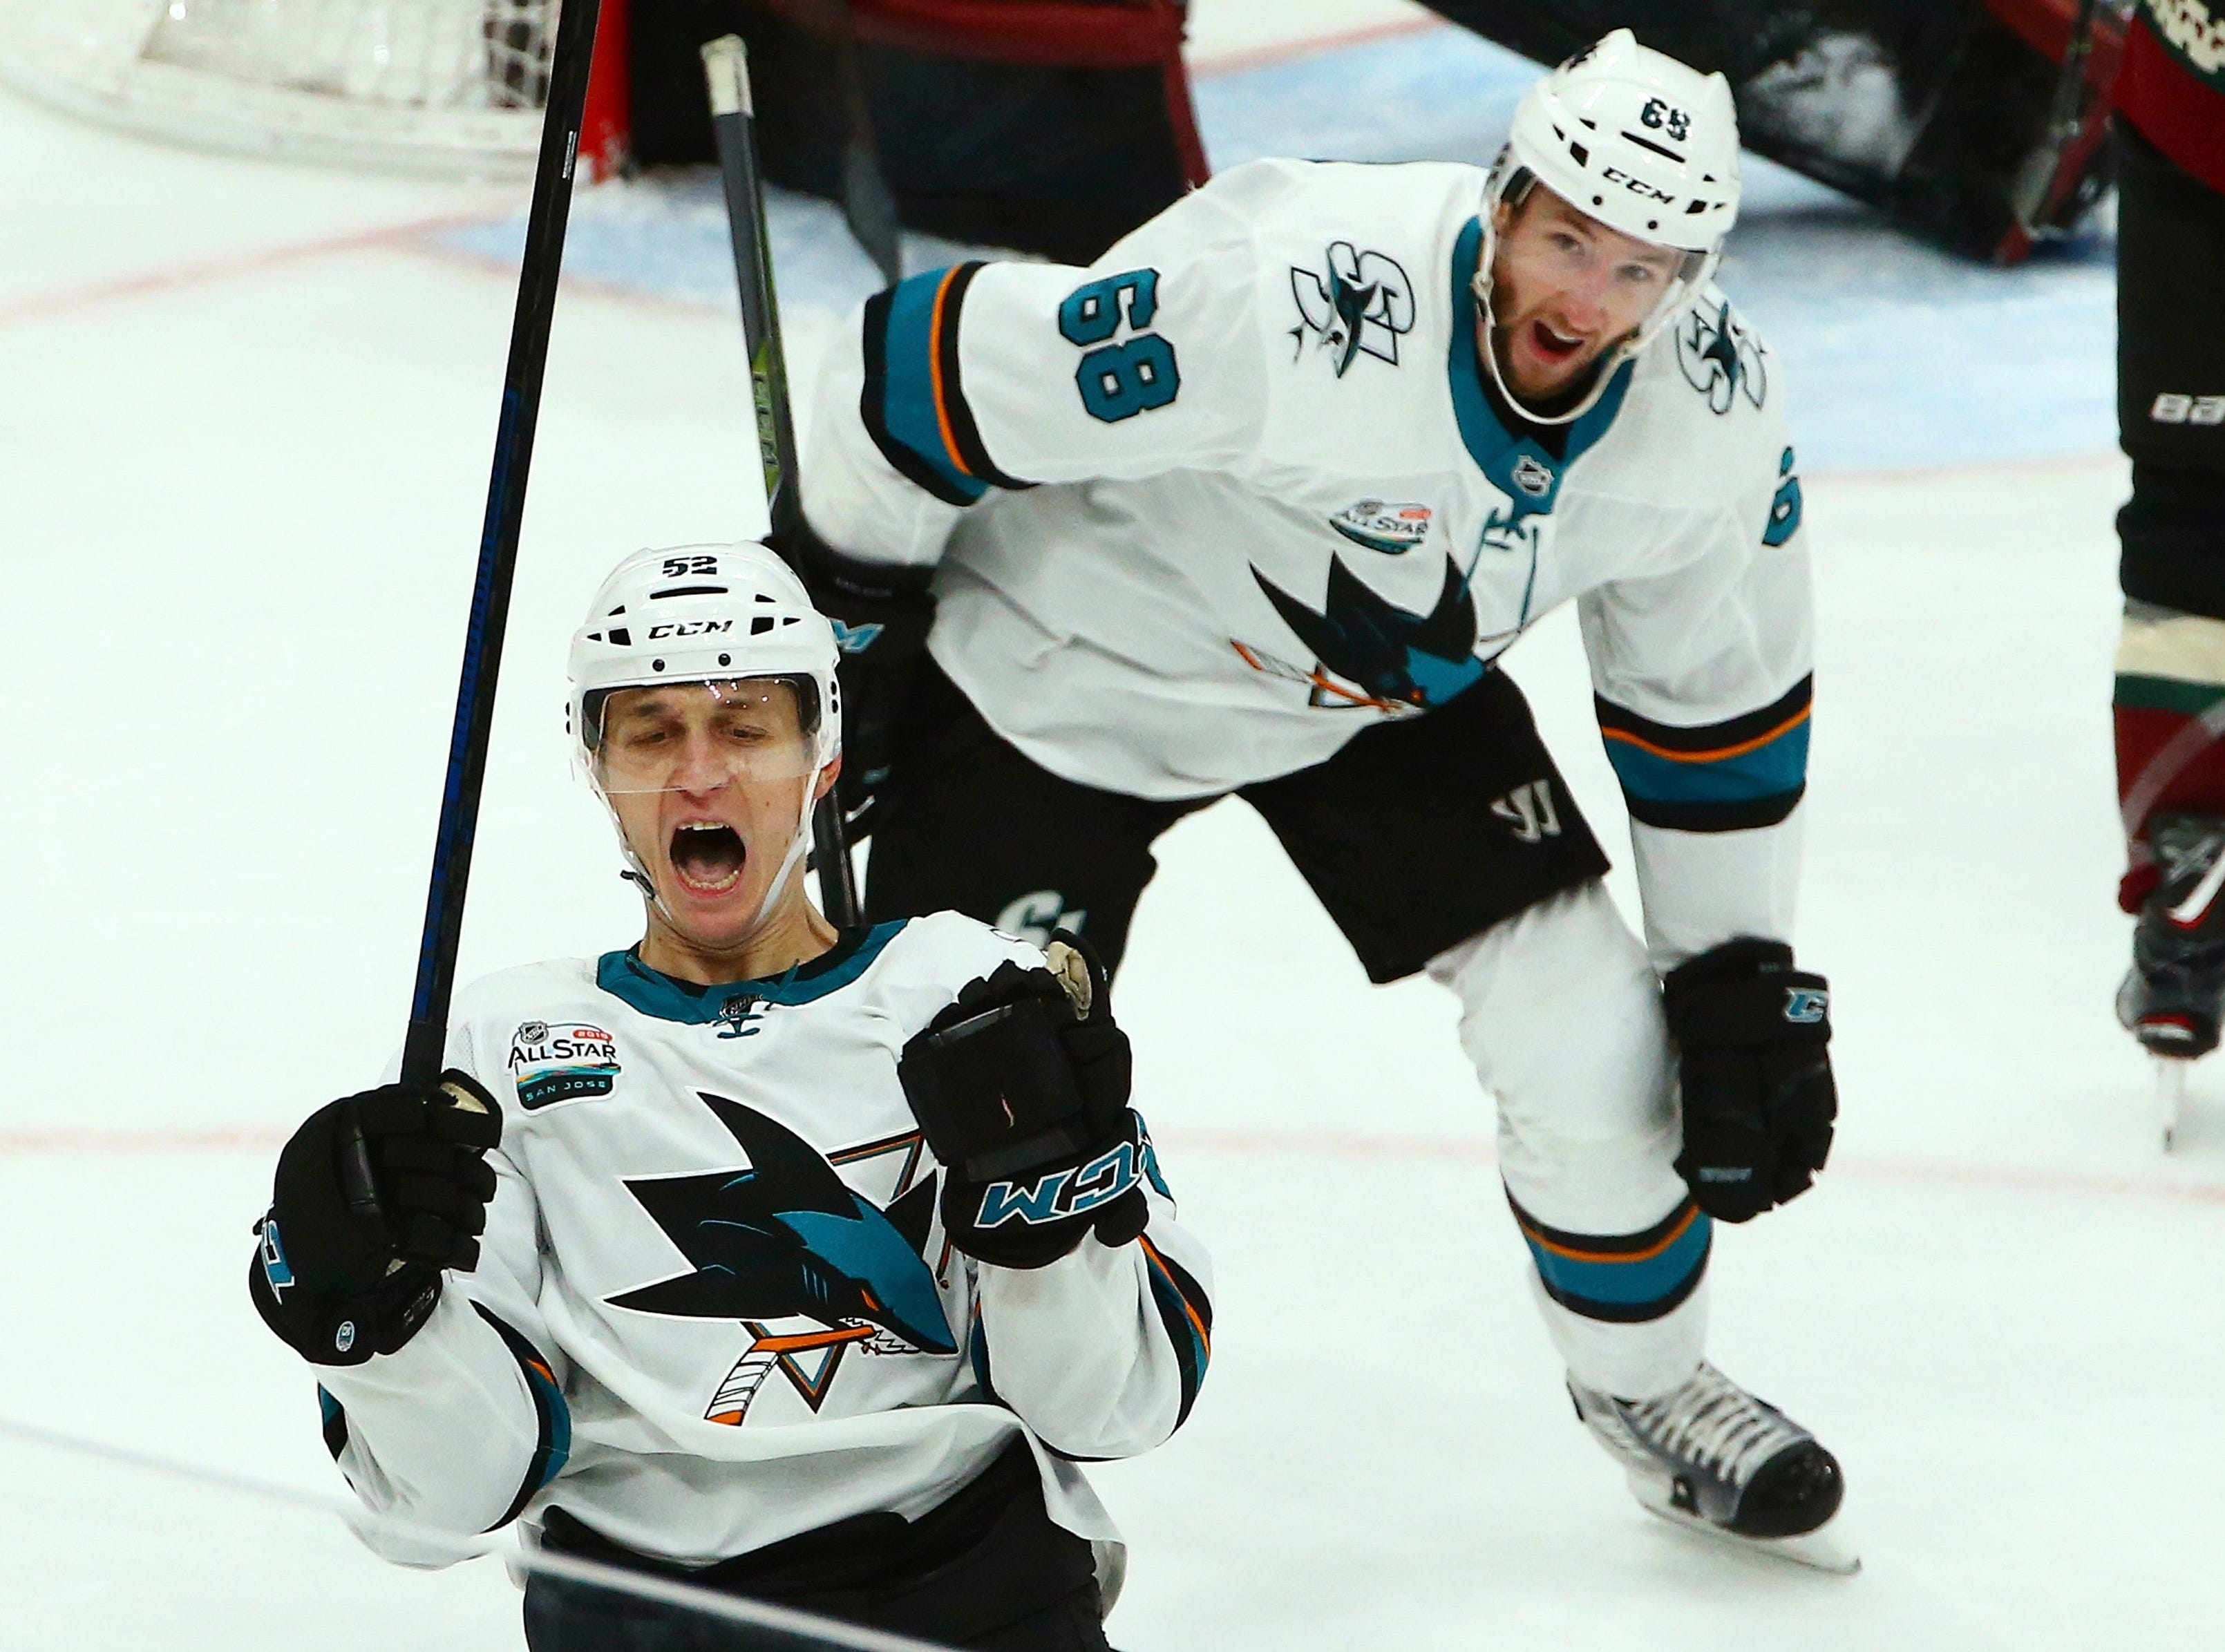 San Jose Sharks center Lukas Radil (52) celebrates his goal against the Arizona Coyotes as Sharks center Melker Karlsson (68) looks on during the third period of an NHL hockey game, Saturday, Dec. 8, 2018, in Phoenix. The Sharks defeated the Coyotes 5-3.